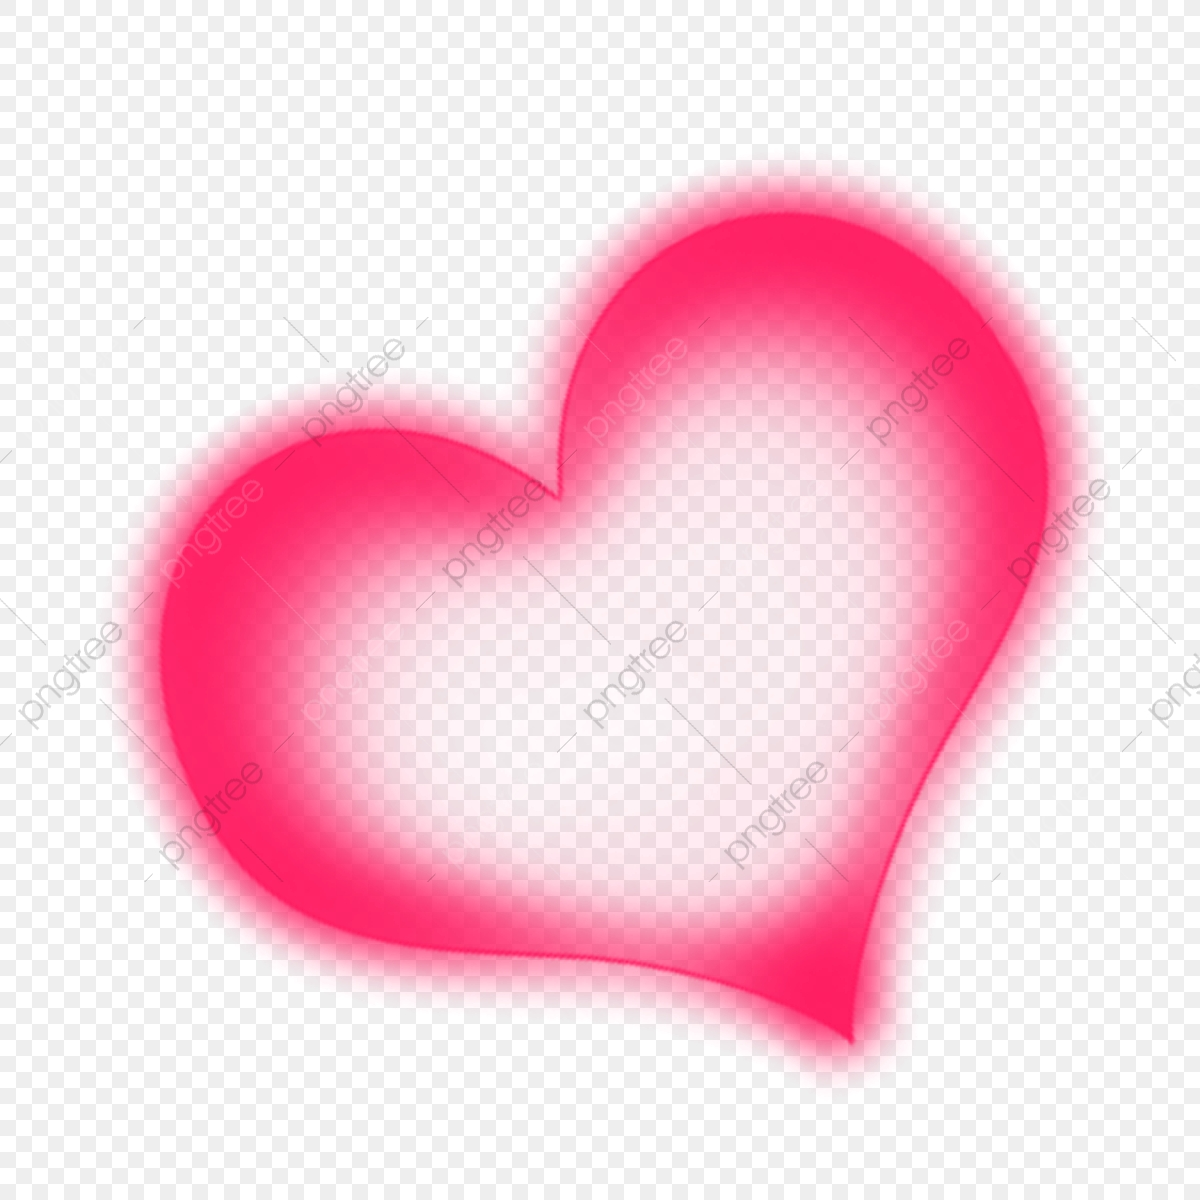 heart transparent background  heart png transparent  pink heart  real heart png transparent